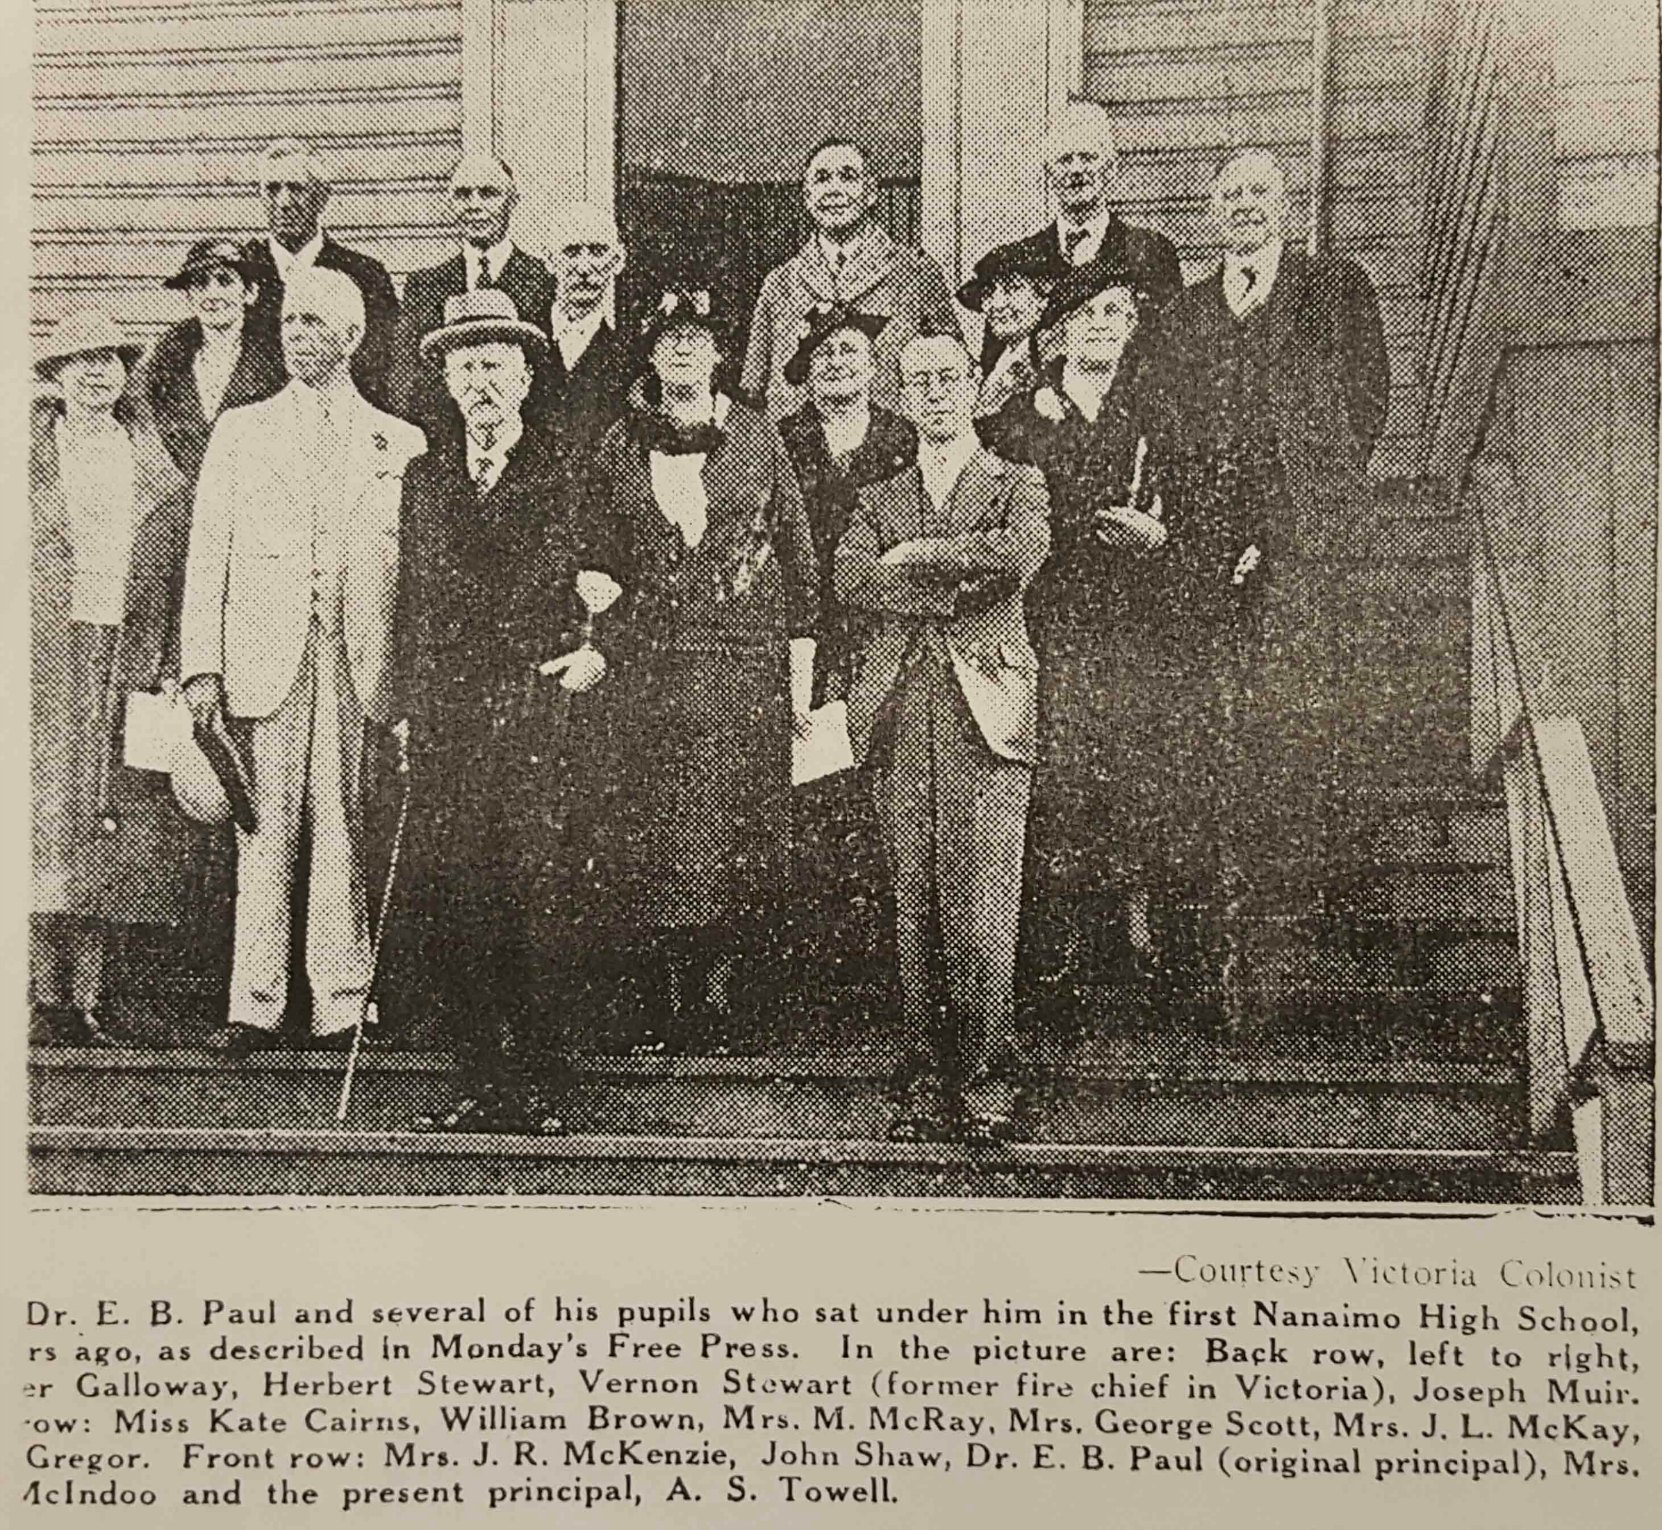 Victoria Daily Colonist photo of Edward Burness Paul meeting with some of his former students in Nanaimo, circa 1928. Other Freemasons in this photo are John Shaw (Past Master of Ashlar Lodge, No. 3, Past Grand Master and former Mayor of Nanaimo) and Vernon Stewart (former fire chief of Victoria).